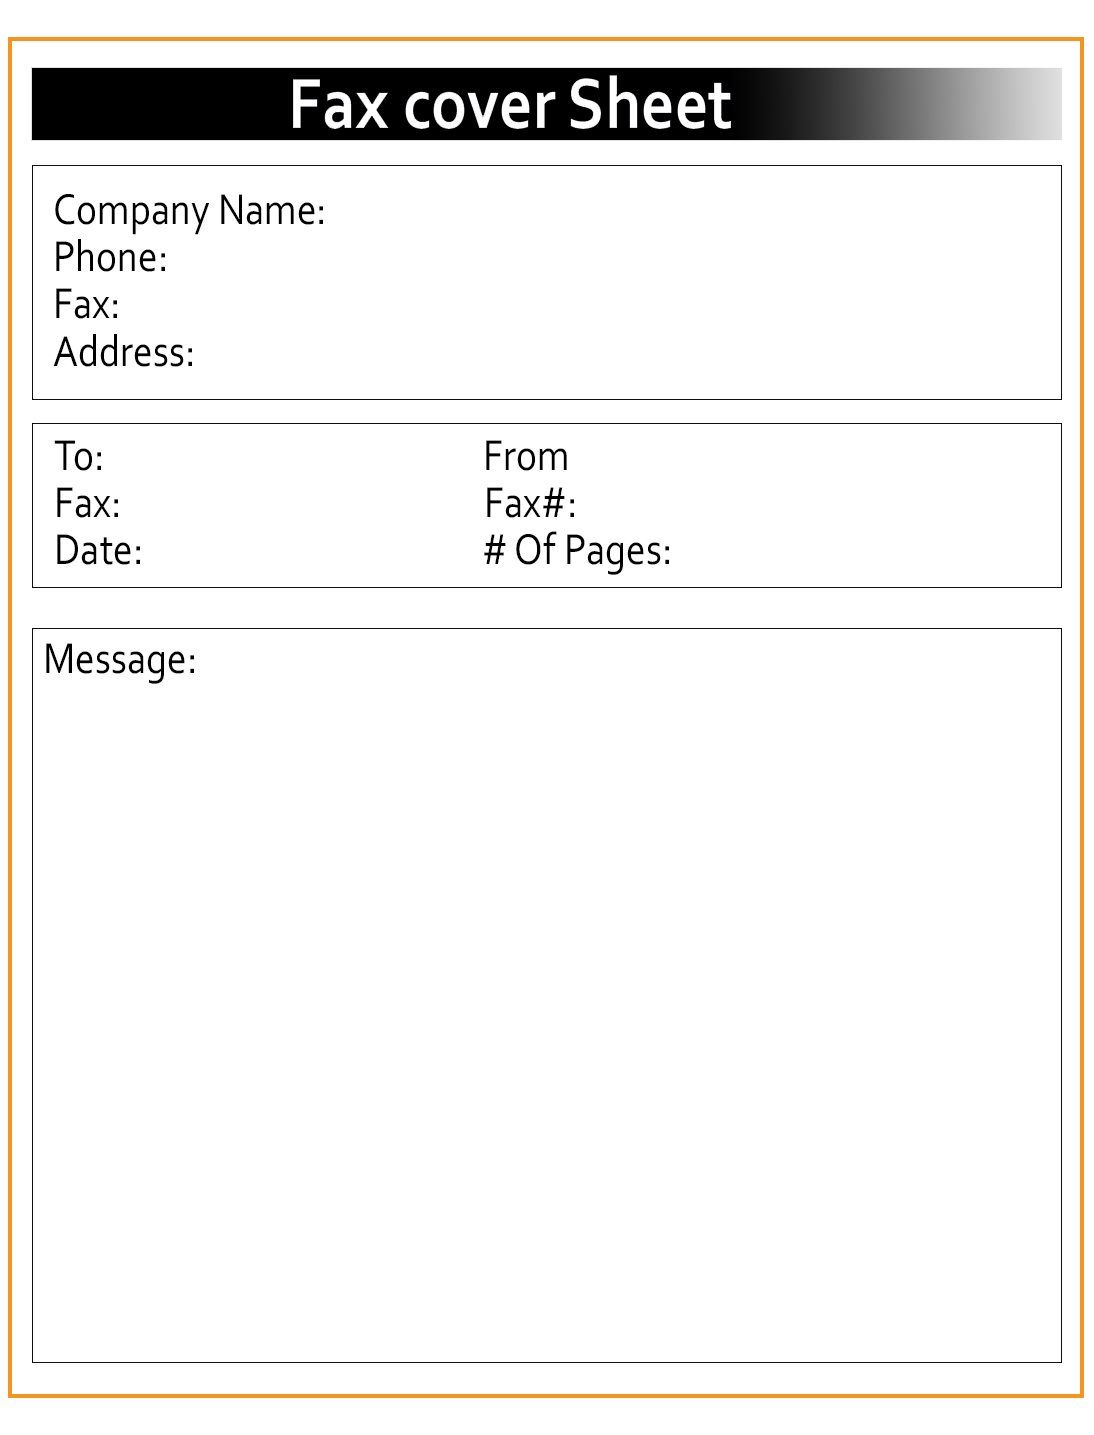 Generic Fax Cover Sheet